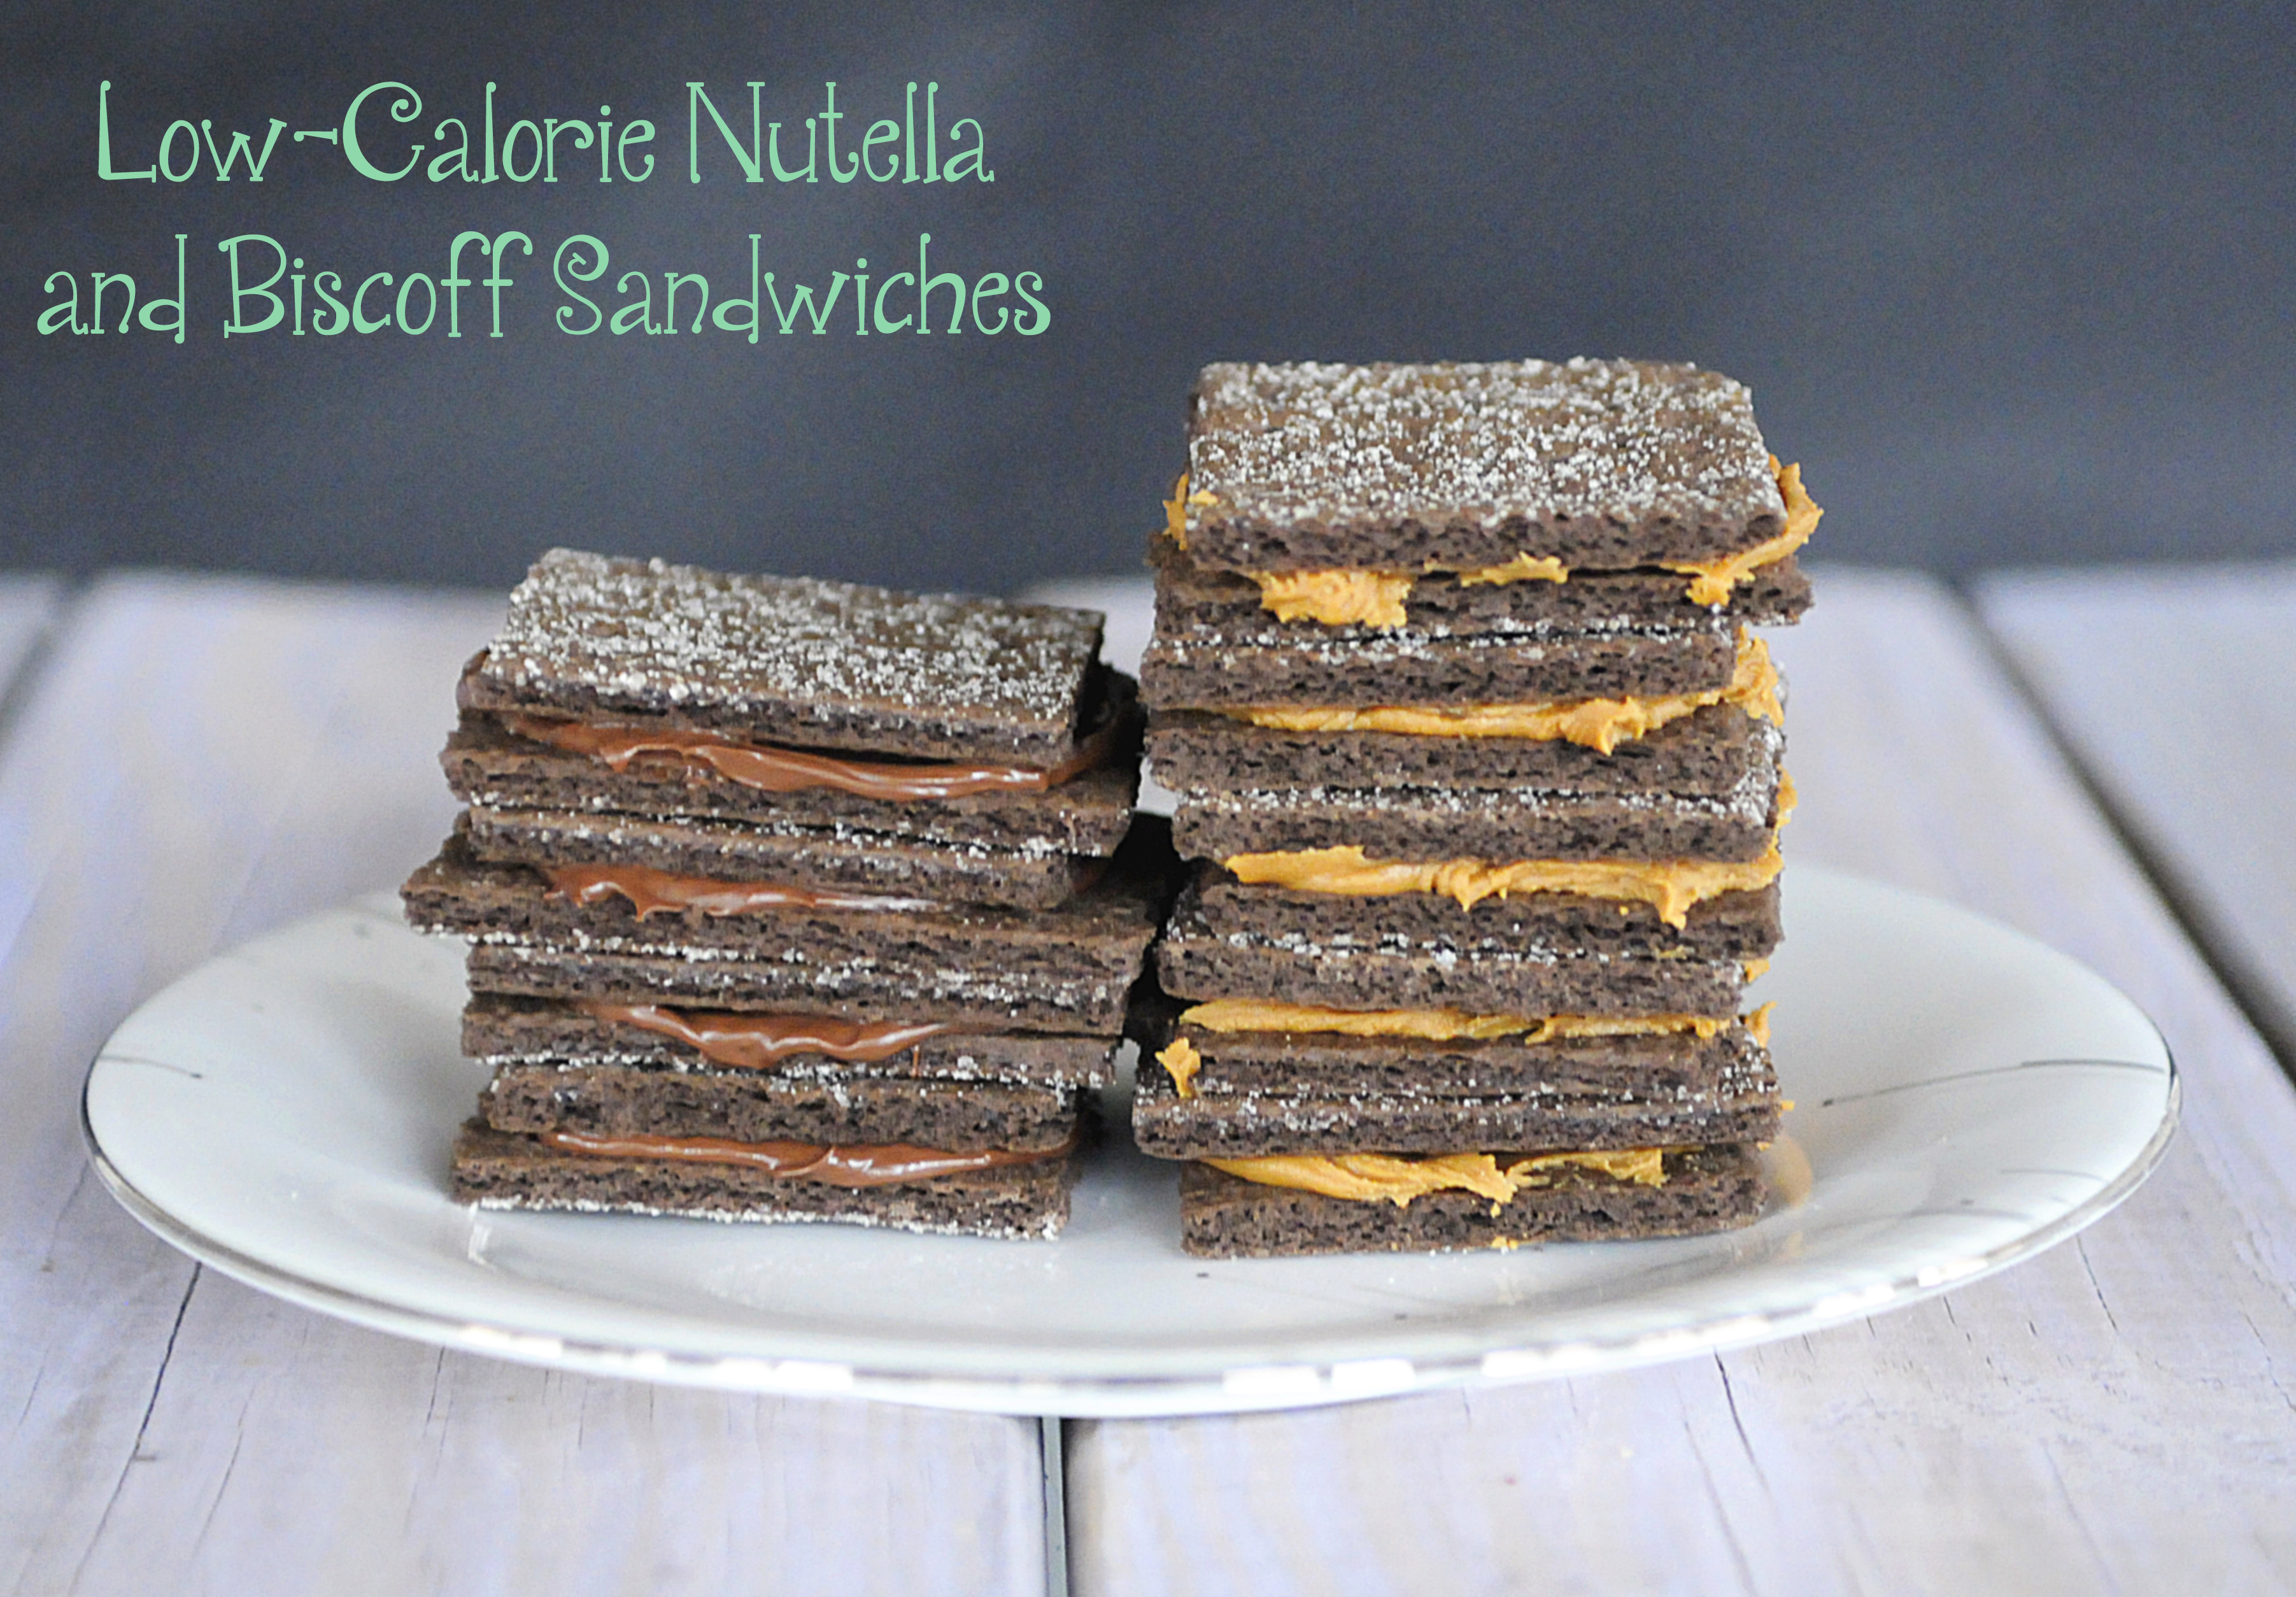 Low-Calorie Nutella and Biscoff Sandwiches